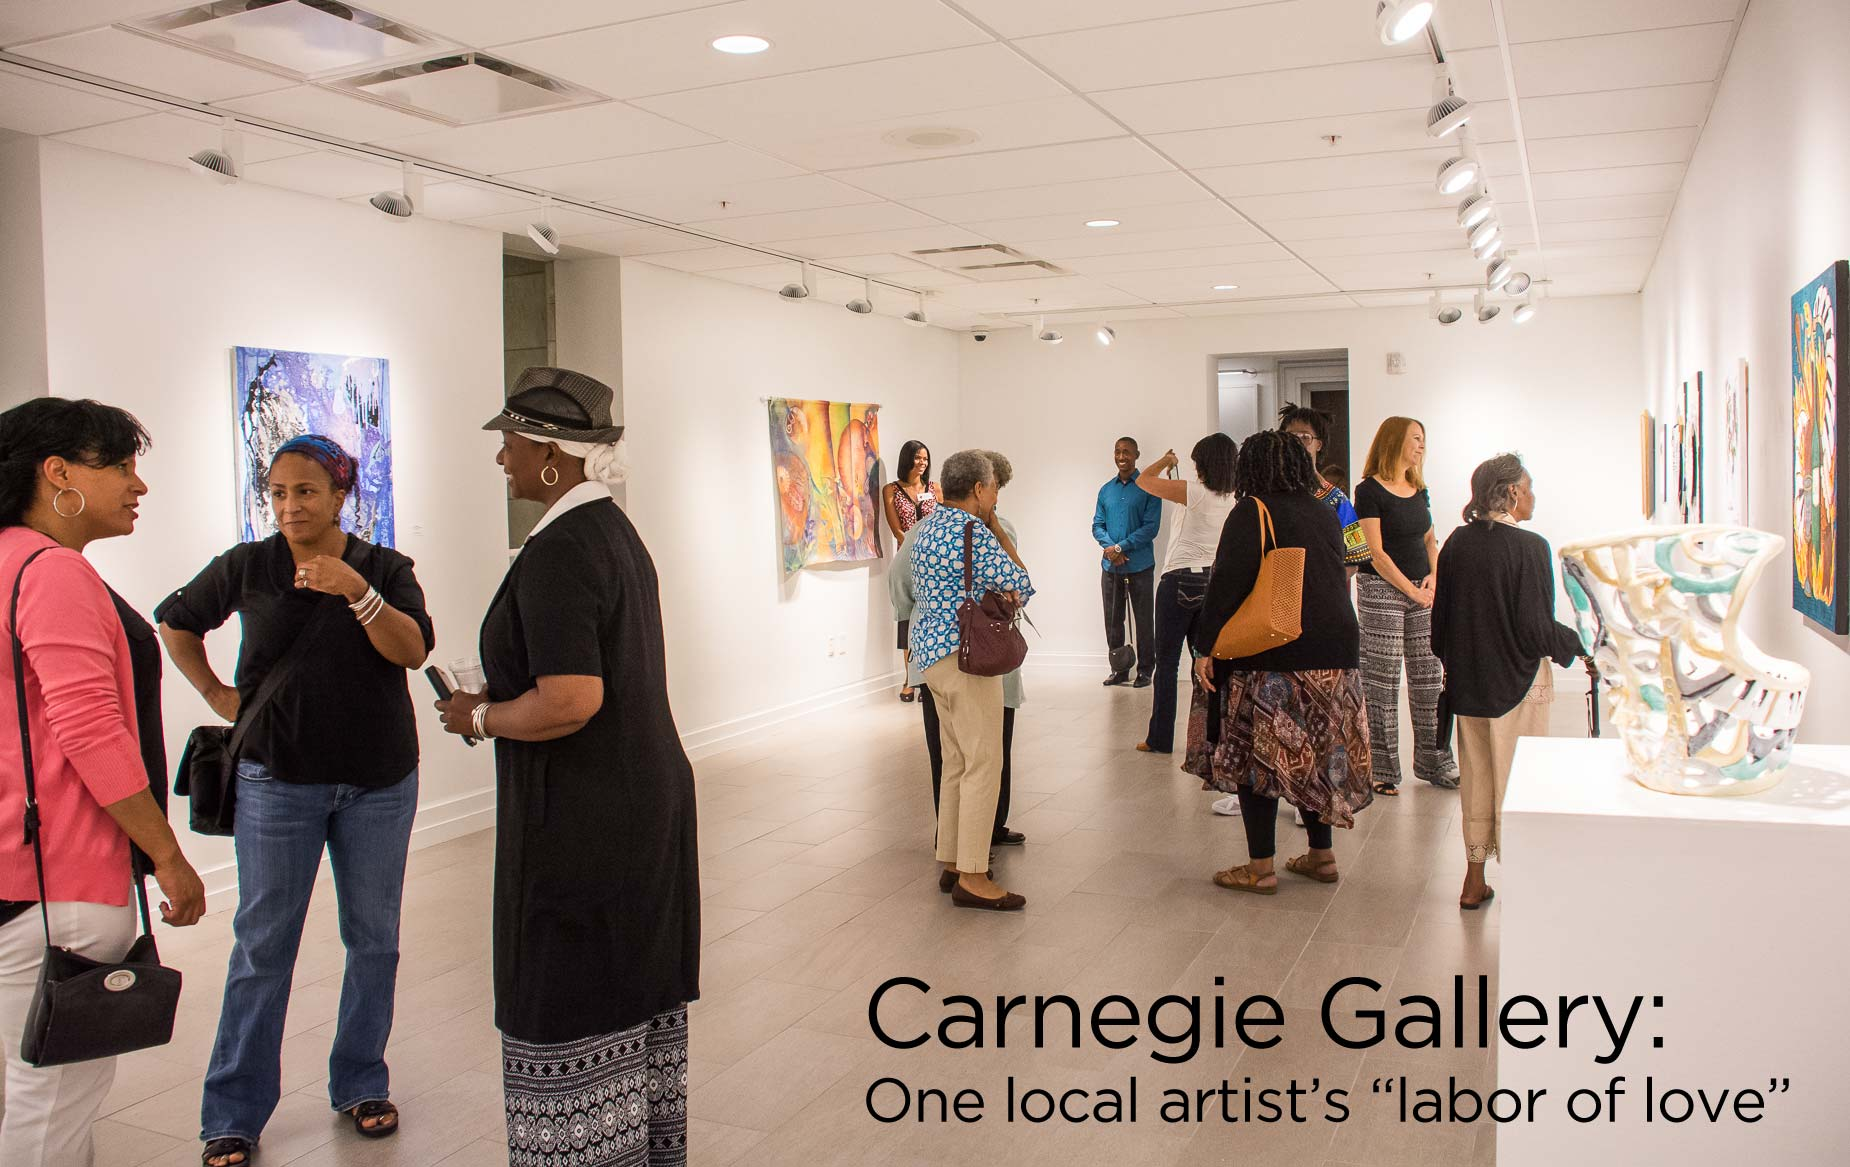 Art Gallery Artist Carnegie Gallery One Local Artist S Labor Of Love Friends Of